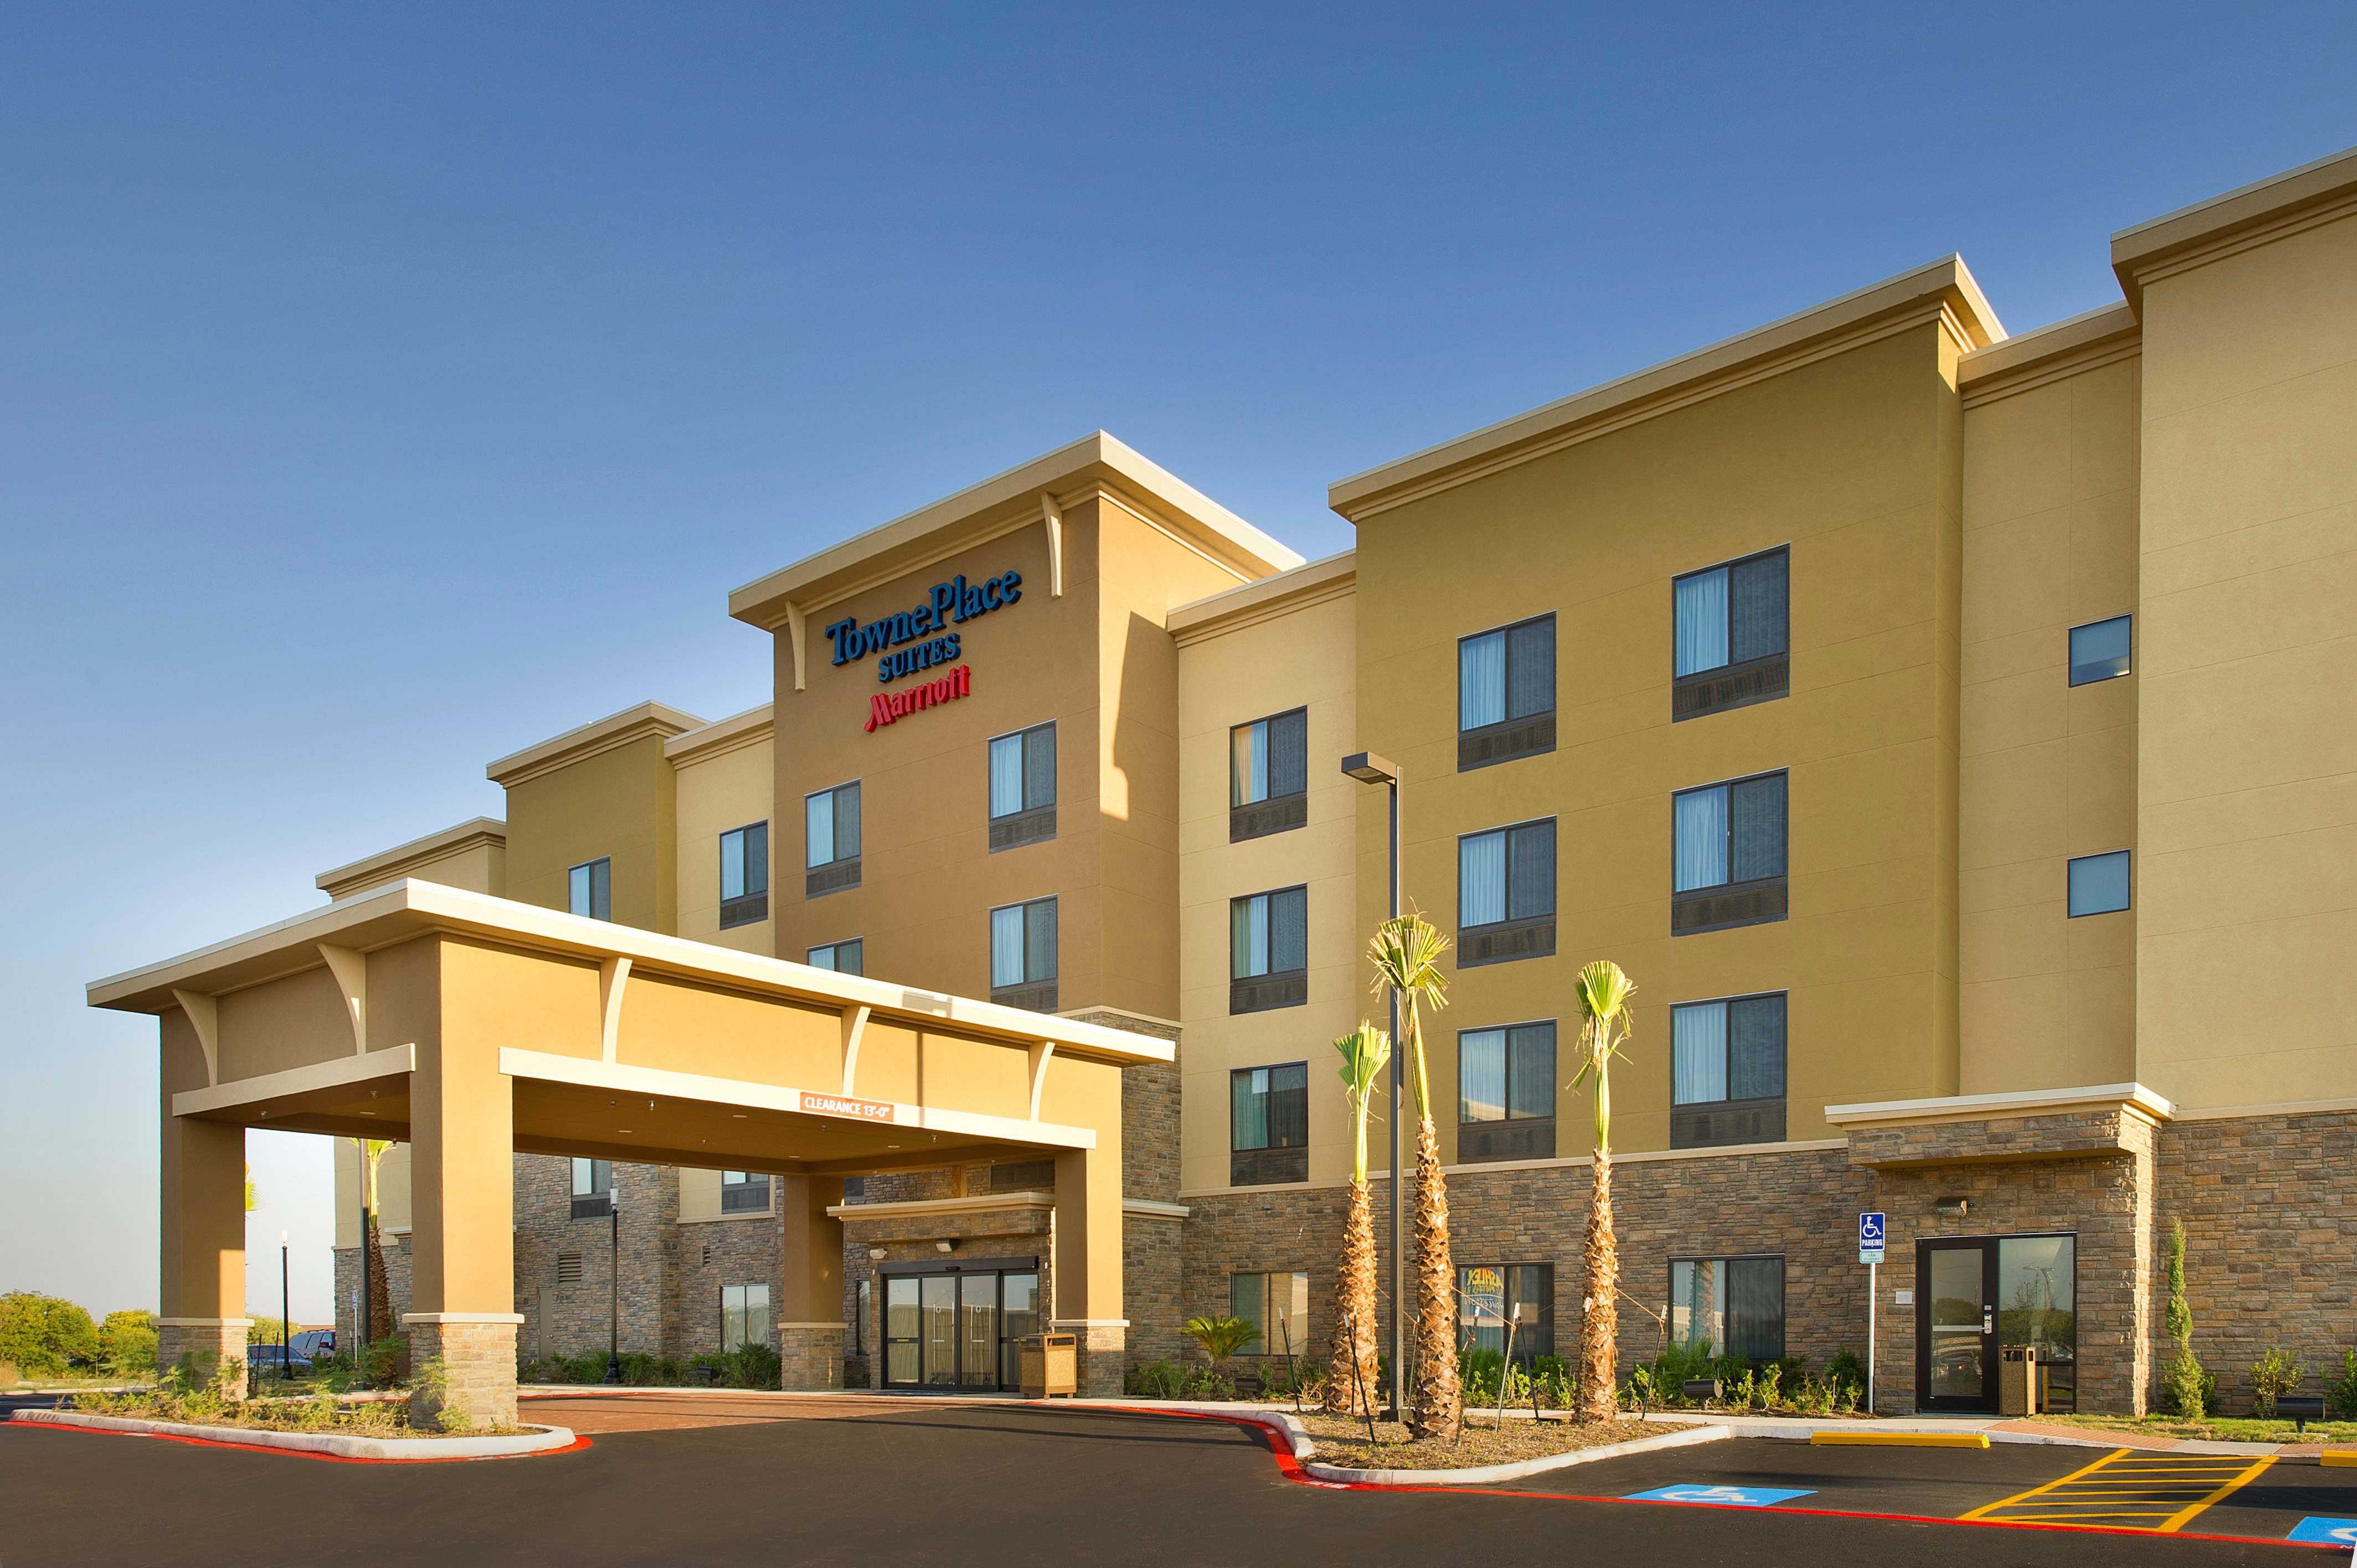 TownePlace Suites by Marriott Eagle Pass image 0